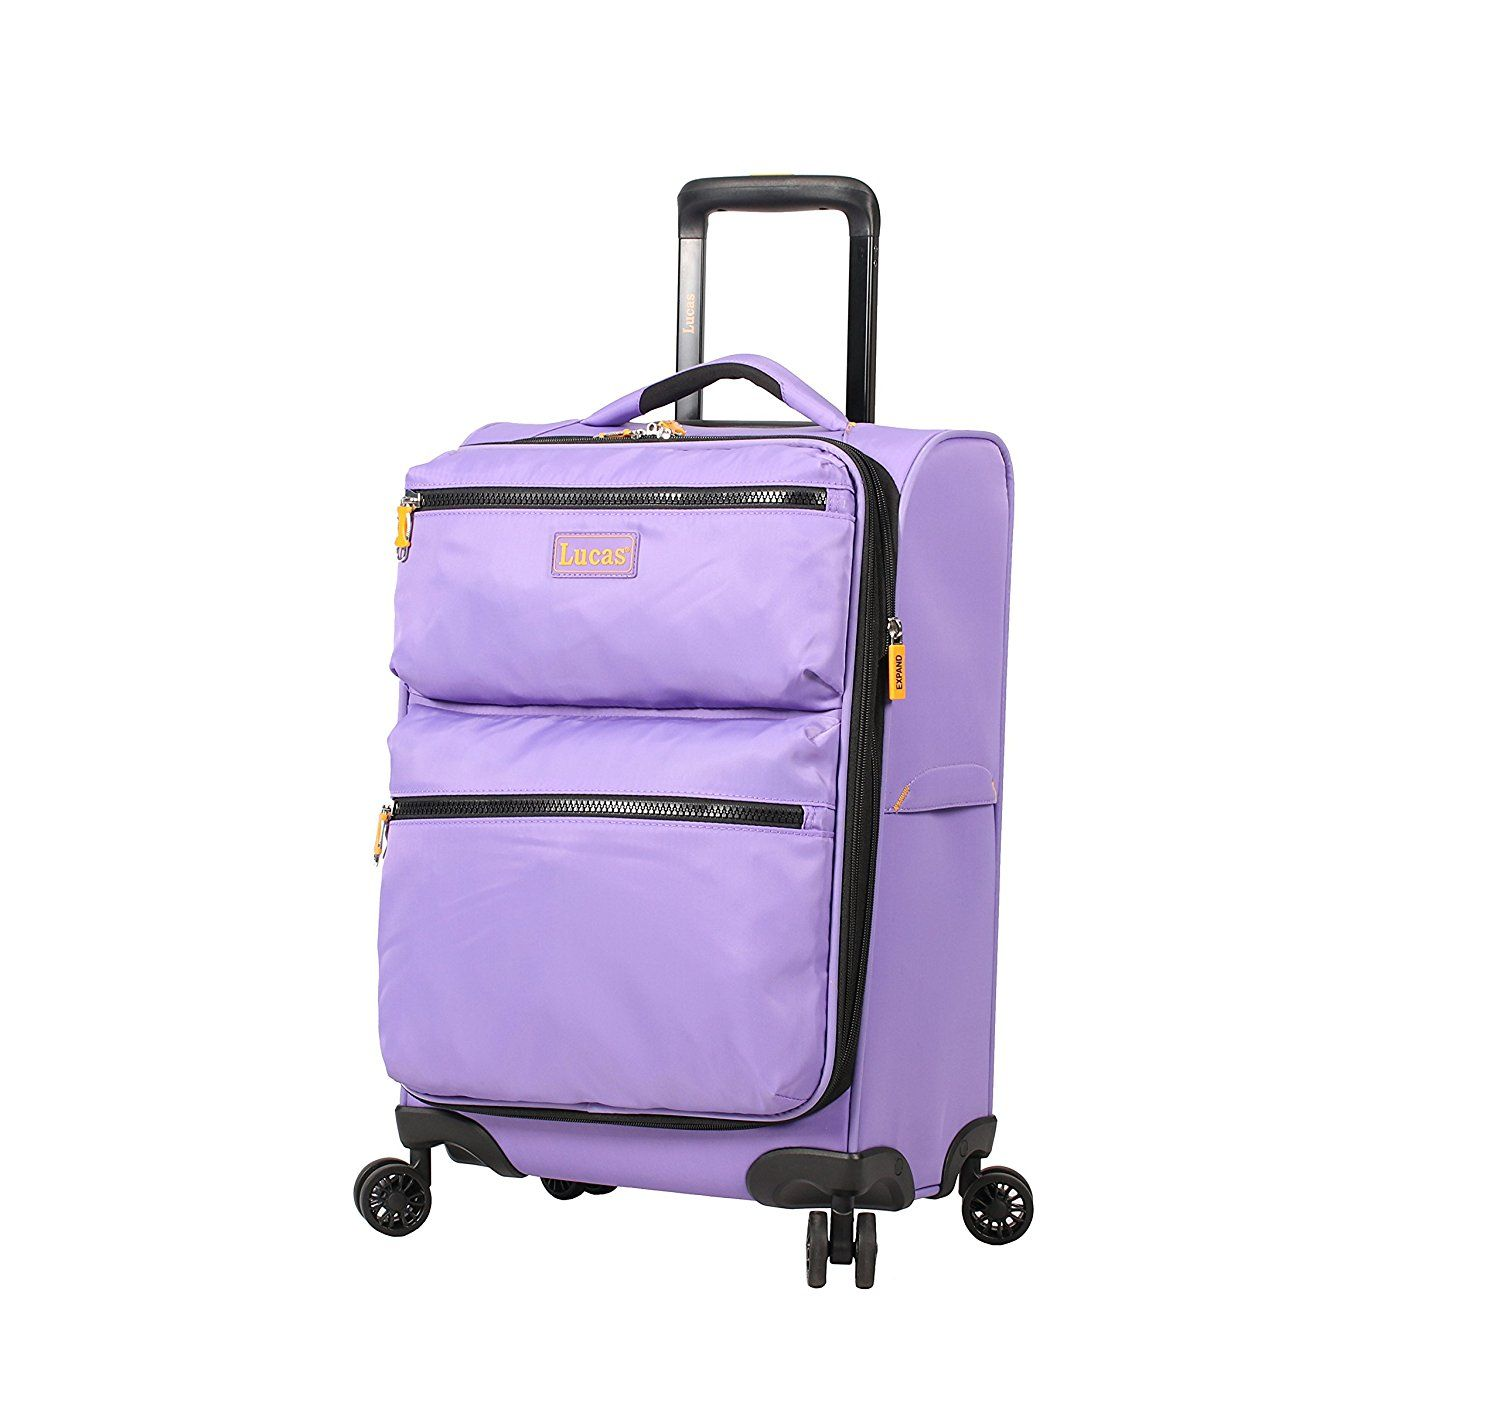 39f149587a02 Lucas Luggage Ultra Lightweight Carry On 20 inch Expandable Suitcase ...